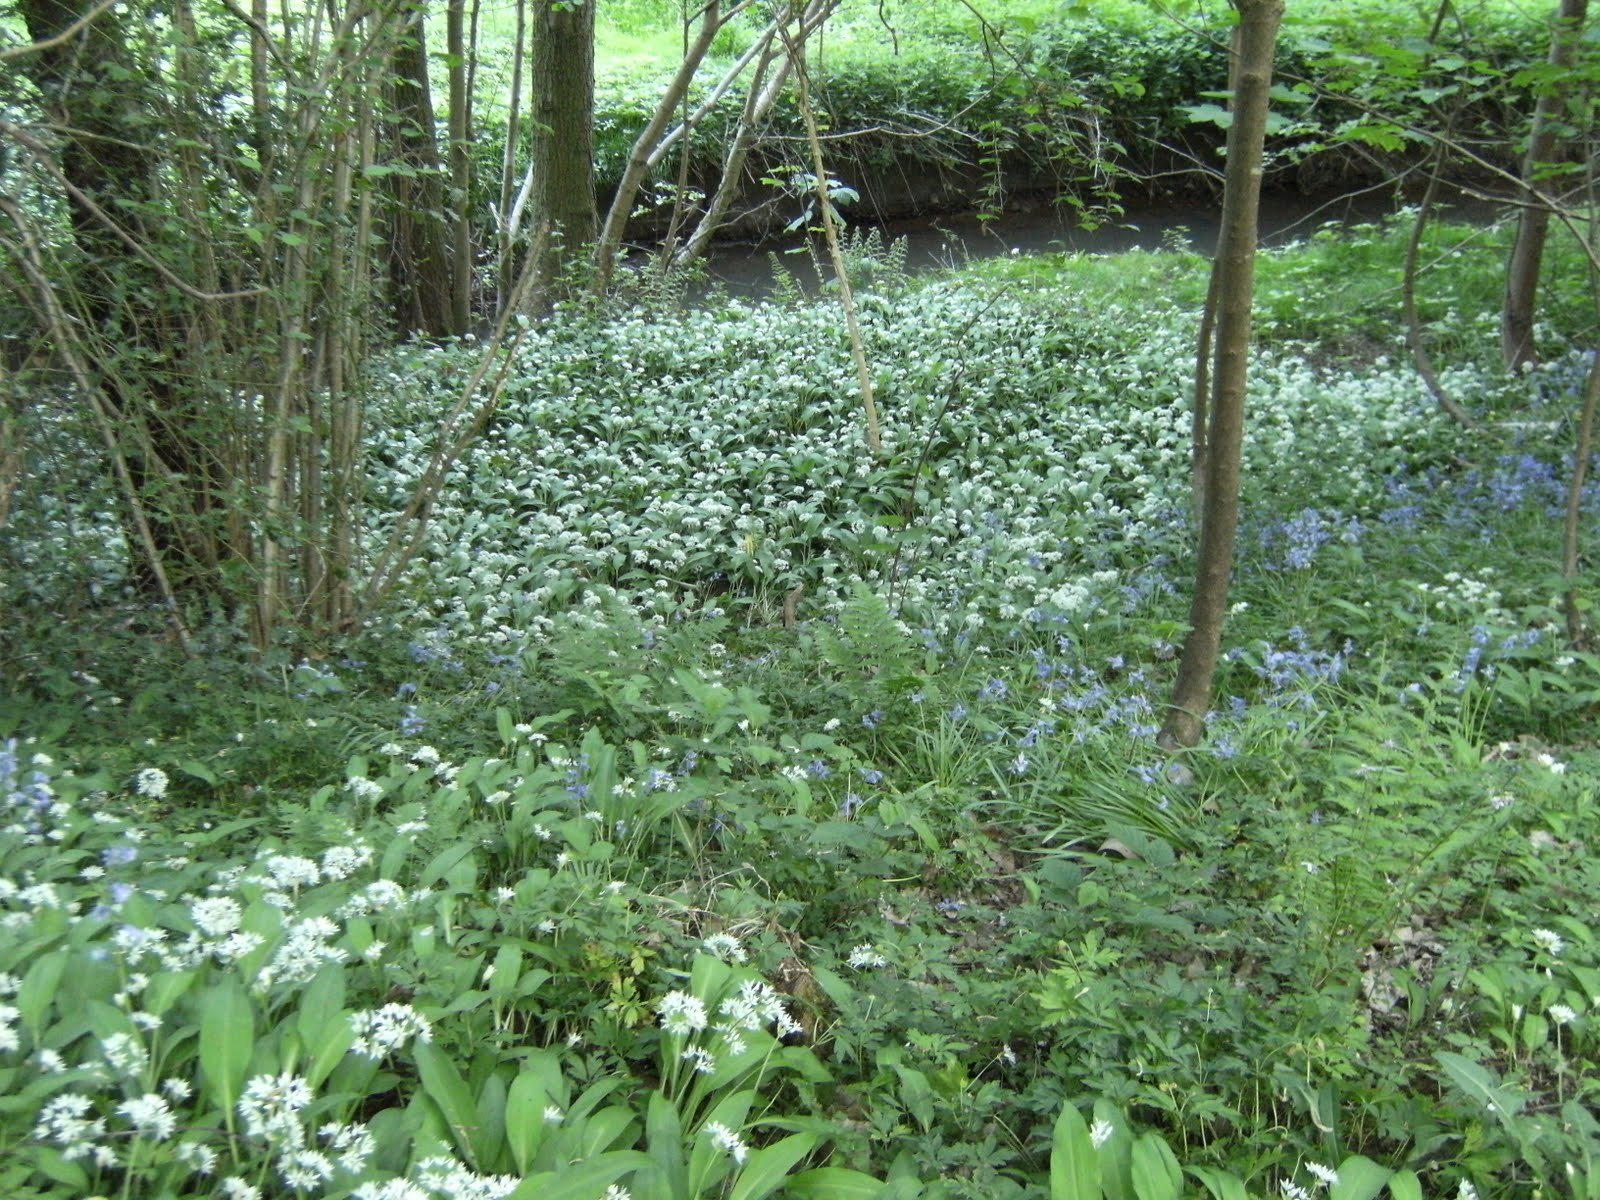 DSCF7507 Ramsons in wood near High Rocks